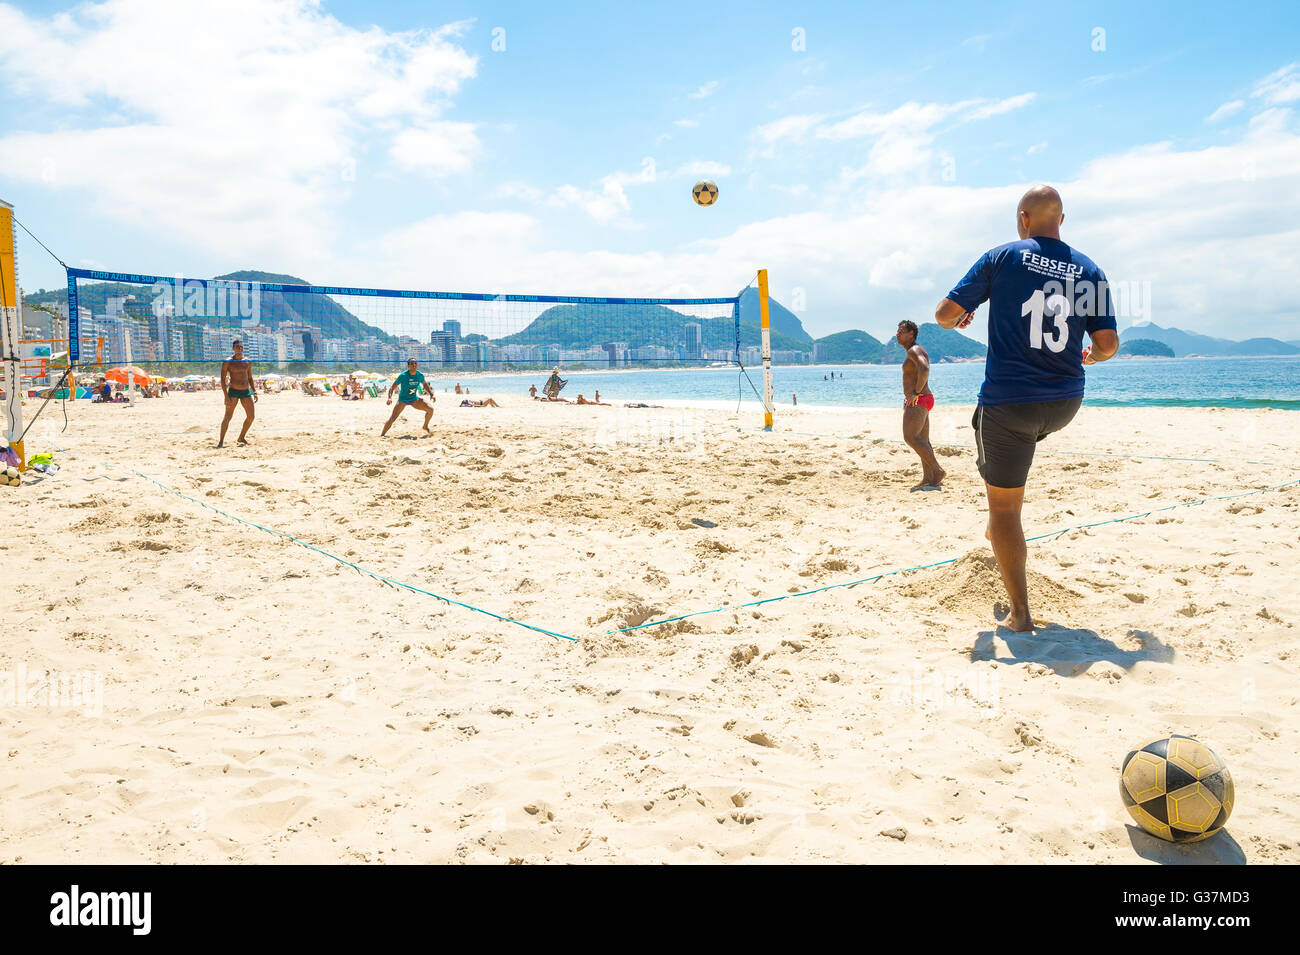 RIO DE JANEIRO - MARCH 15, 2016: Brazilian men play futevôlei (footvolley, combining football and volleyball) - Stock Image